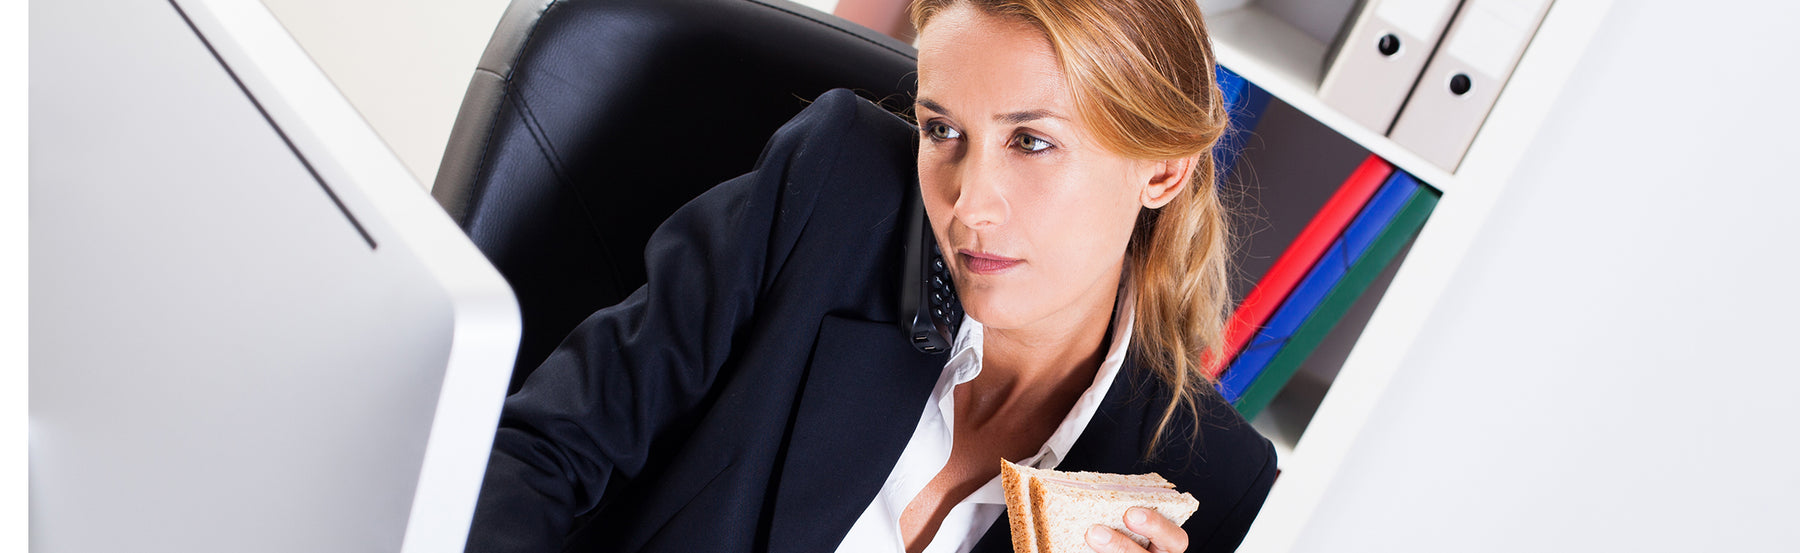 4 Reasons Not to Eat Lunch at Your Desk